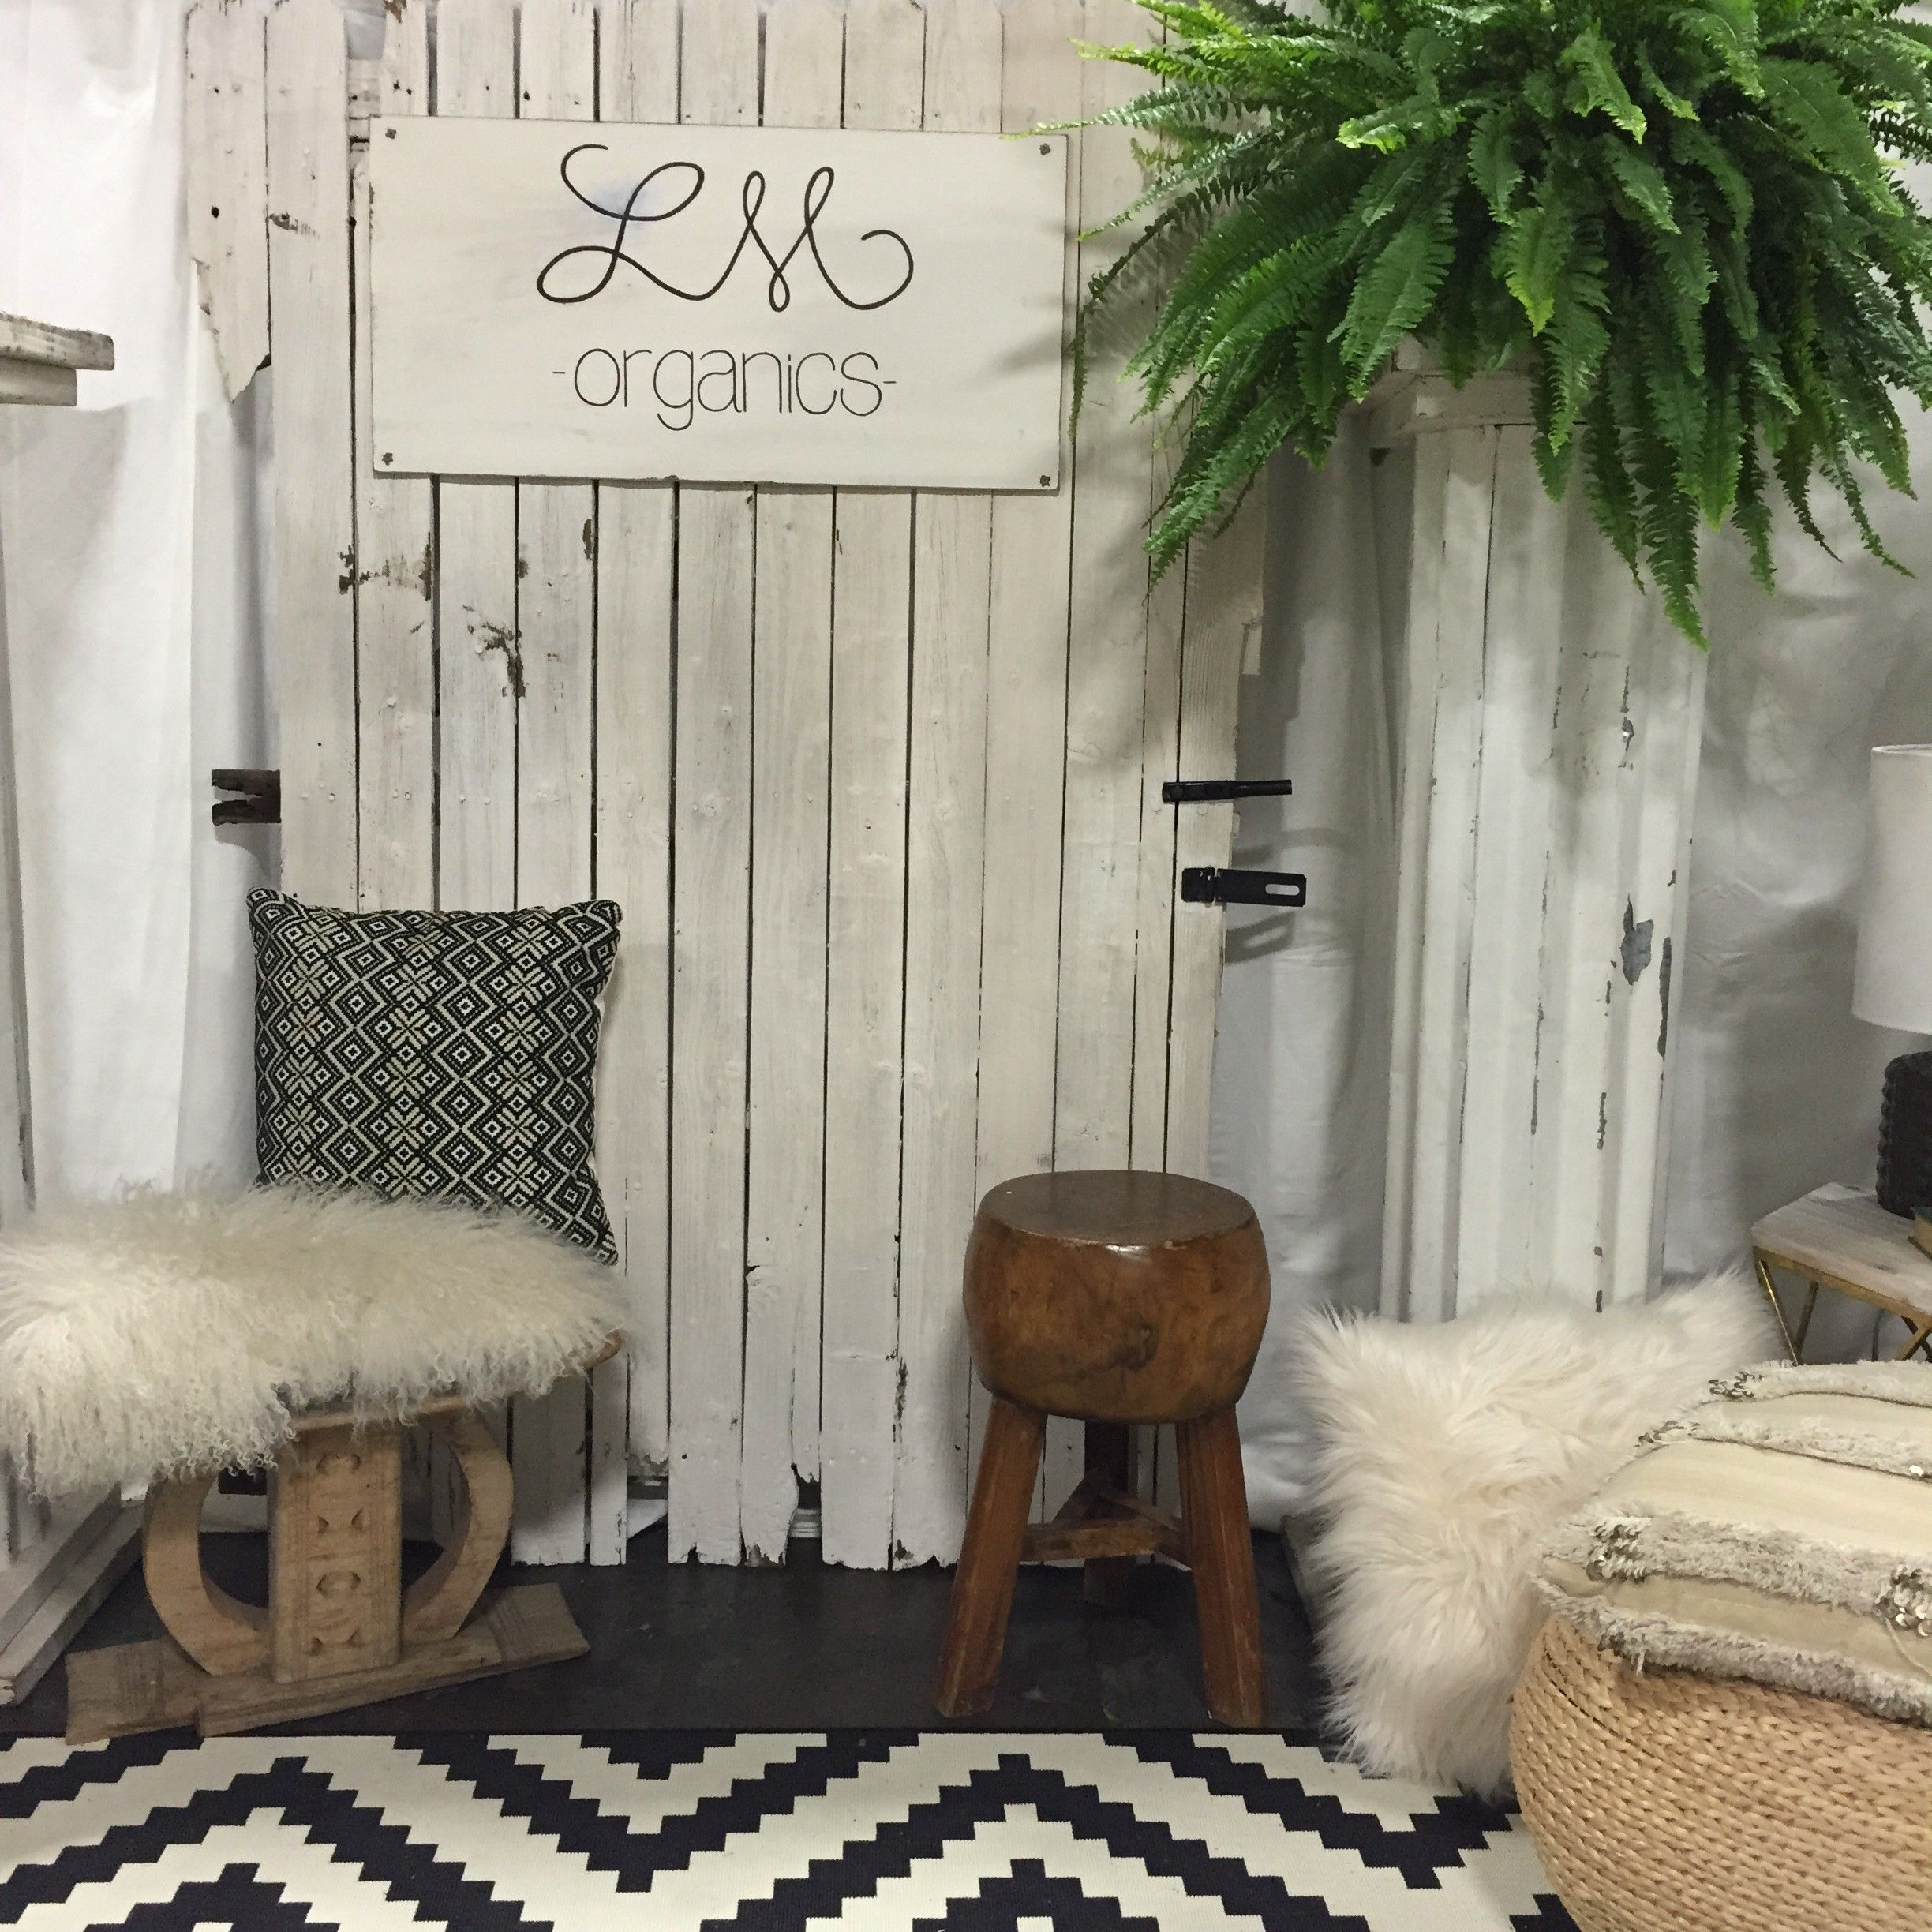 Flea Style Dallas Recap - #fleastyle #dallas #fleamarket